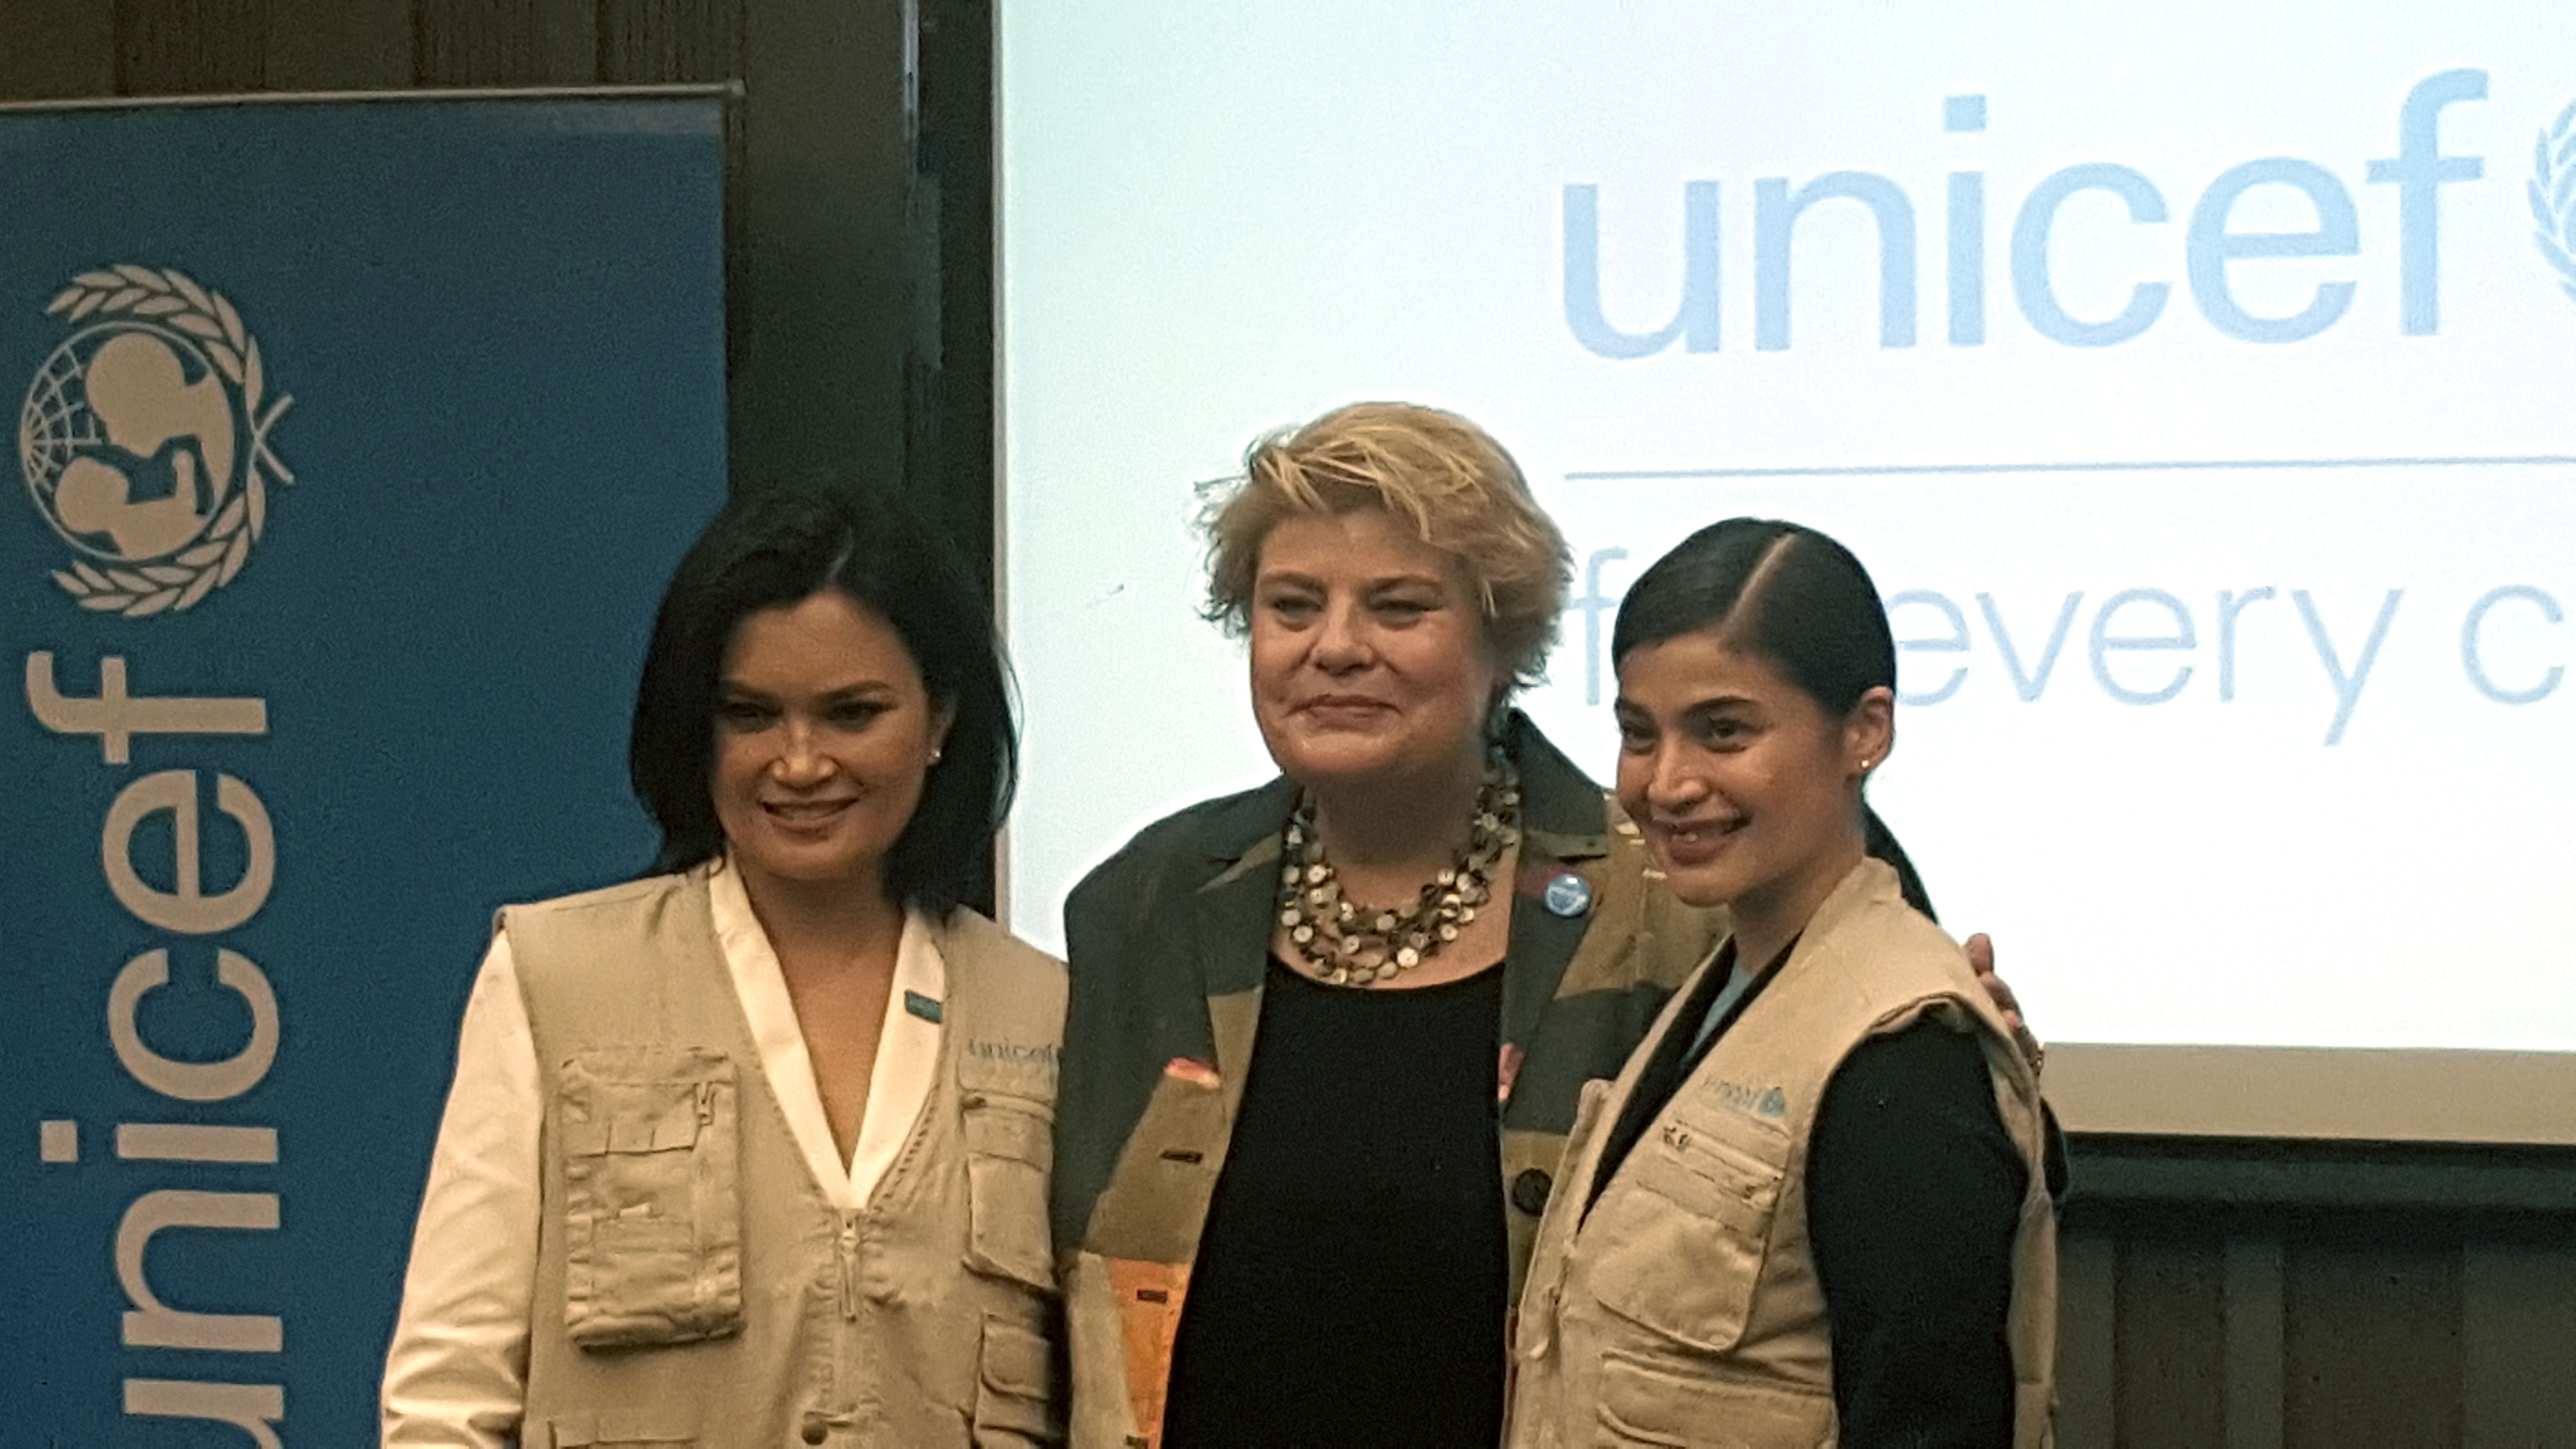 NATIONAL GOODWILL AMBASSADORS. Anne Curtis and Daphne Oseña-Paez pose with UNICEF Philippines representative Lotta Sylwander after being announced as the new national goodwill ambassadors of the organization. Photo by Alexa Villano/Rappler